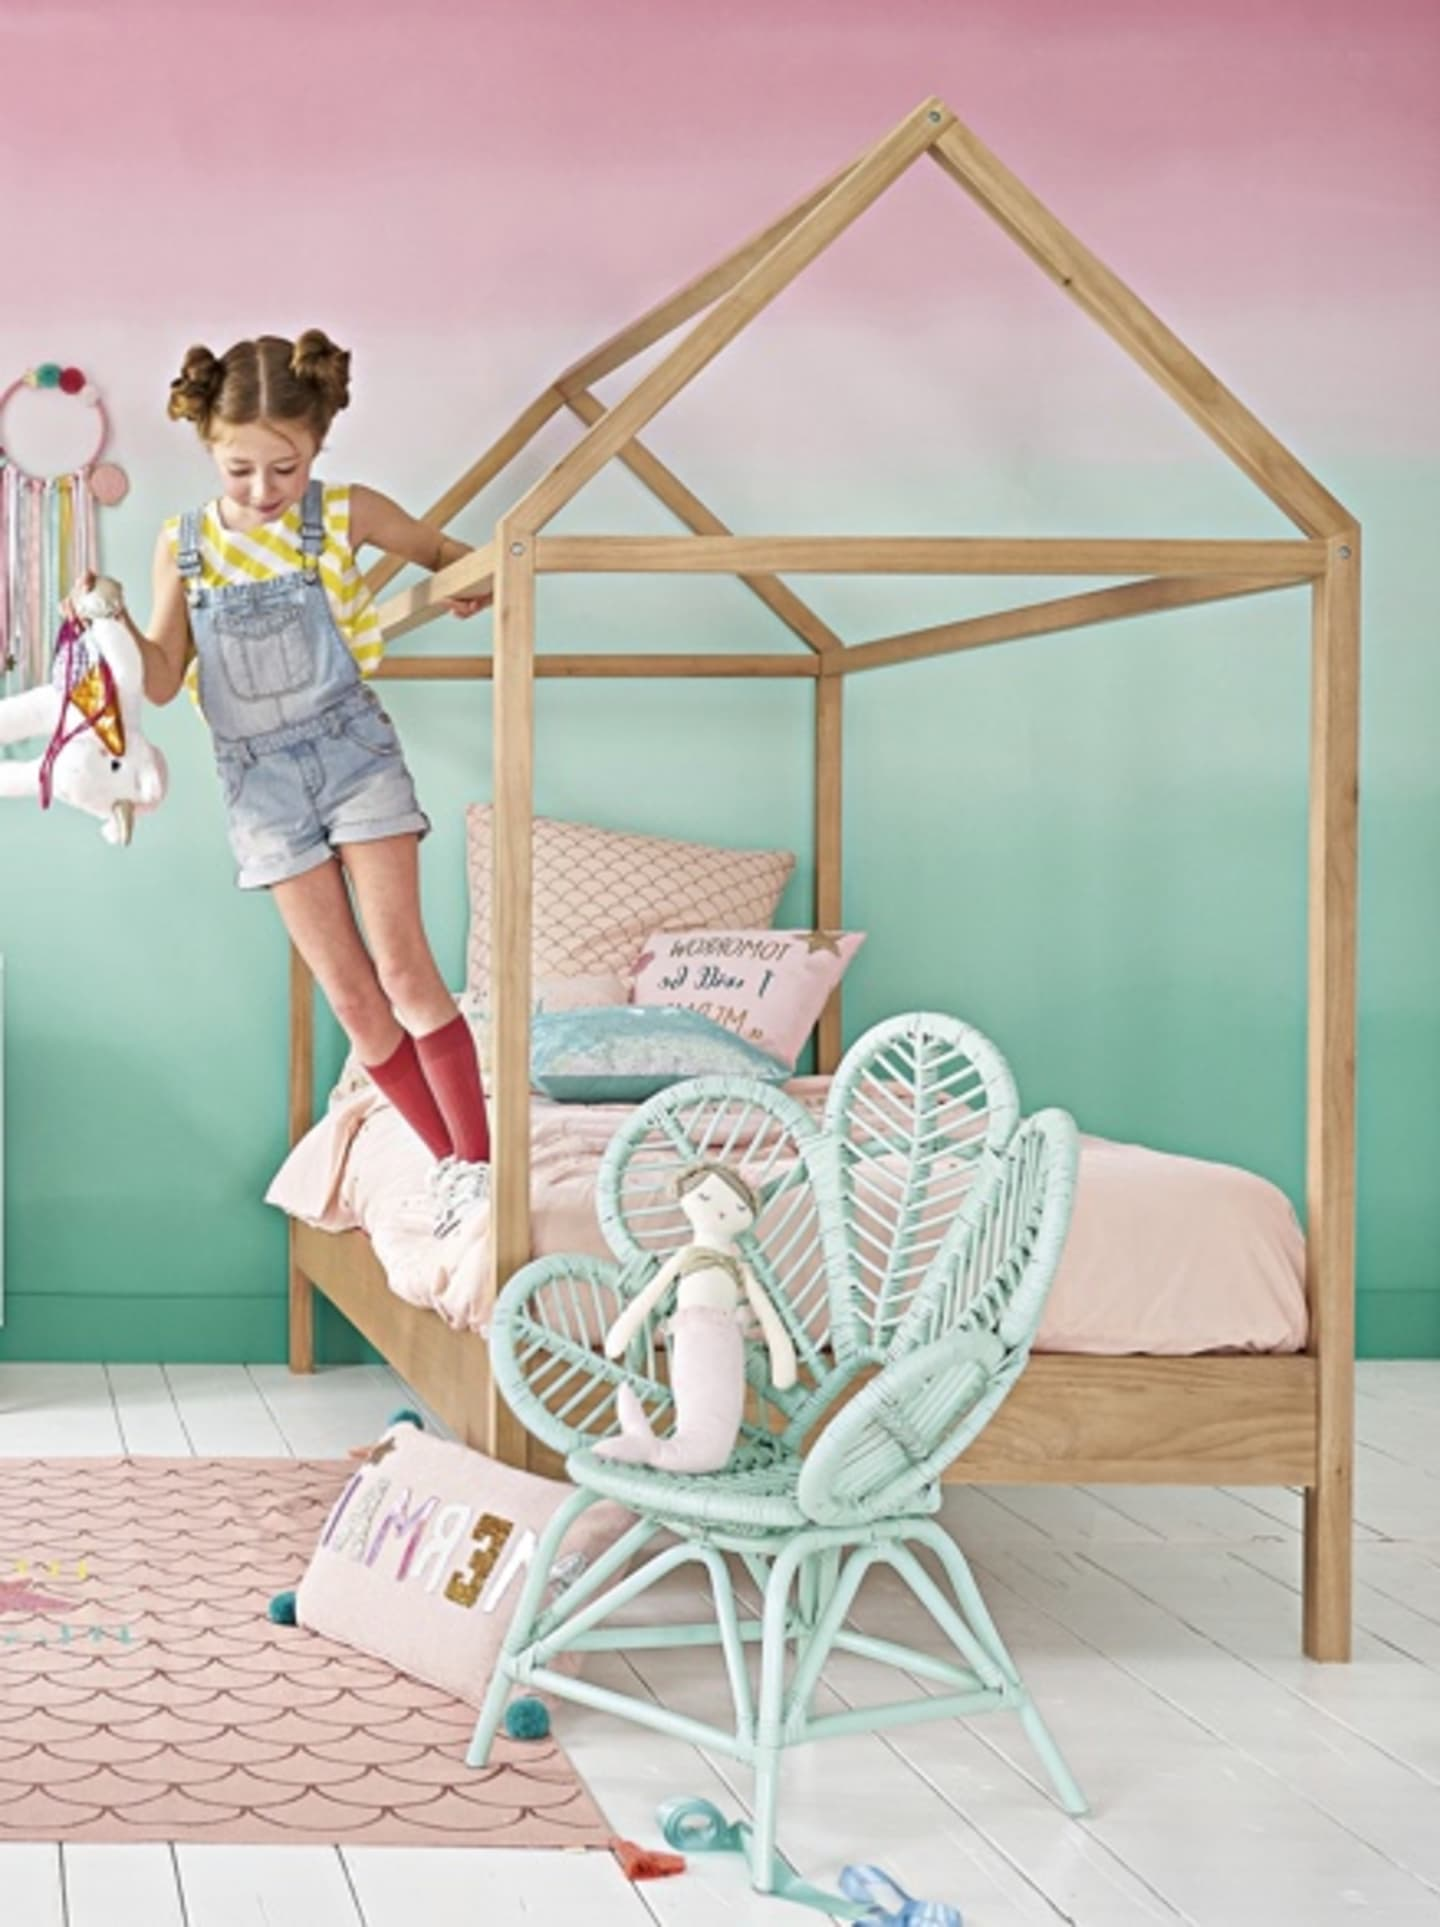 Junior furniture decor baby children teen maisons - Maison du monde uk ...